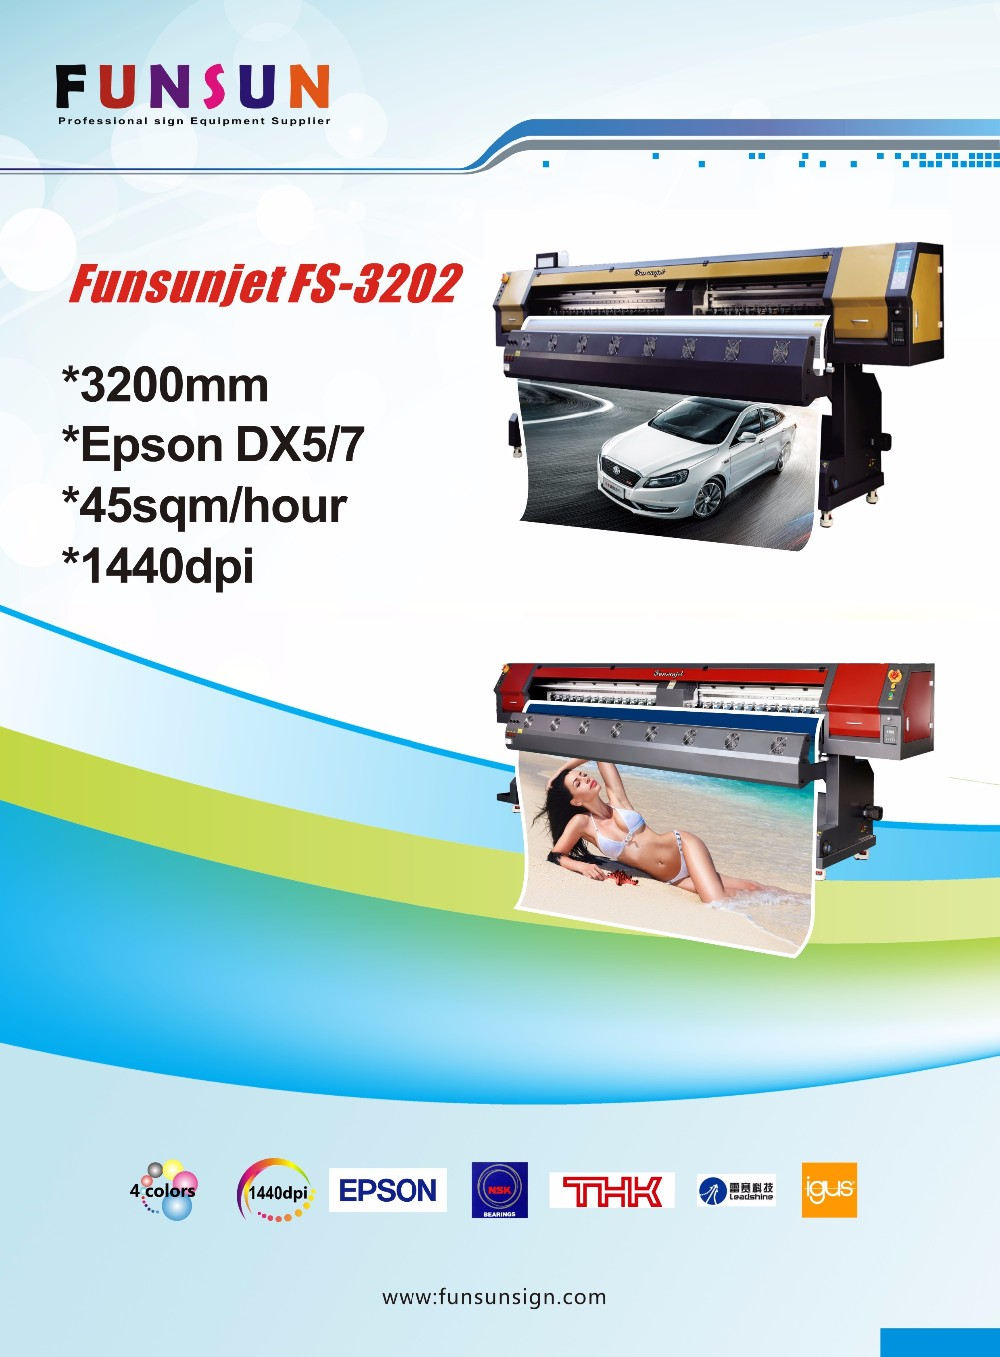 Funsunjet FS-3202M 3.2m dx5 head 1440dpi solvent printer